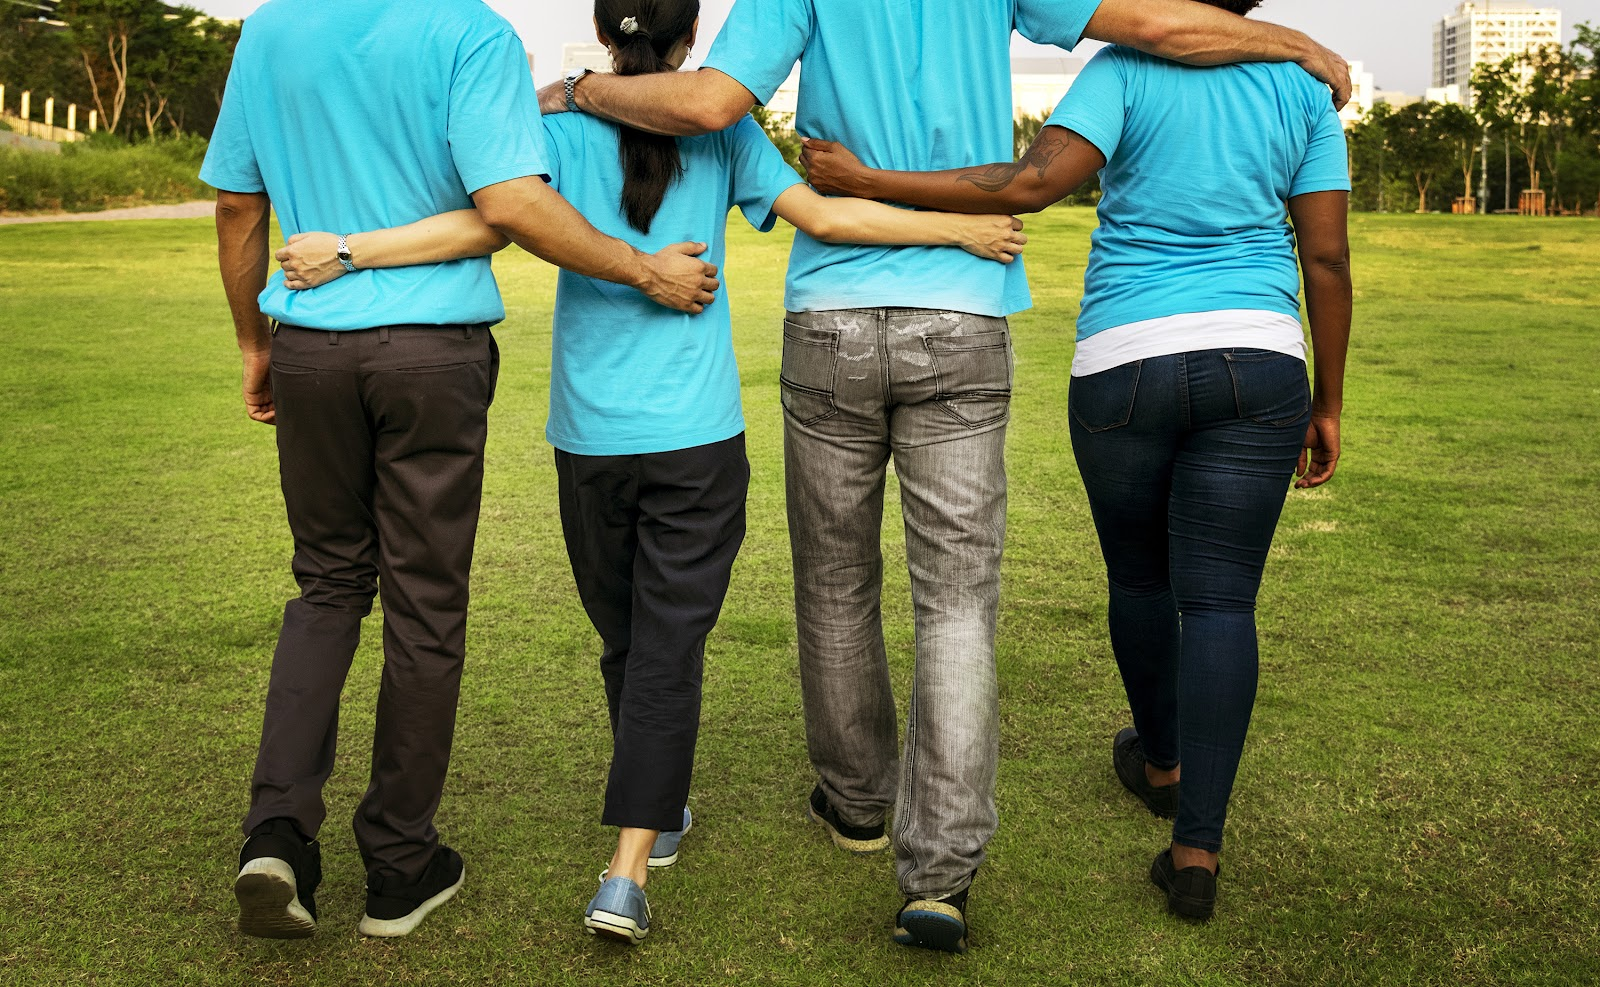 how to start a nonprofit organization: four people walking